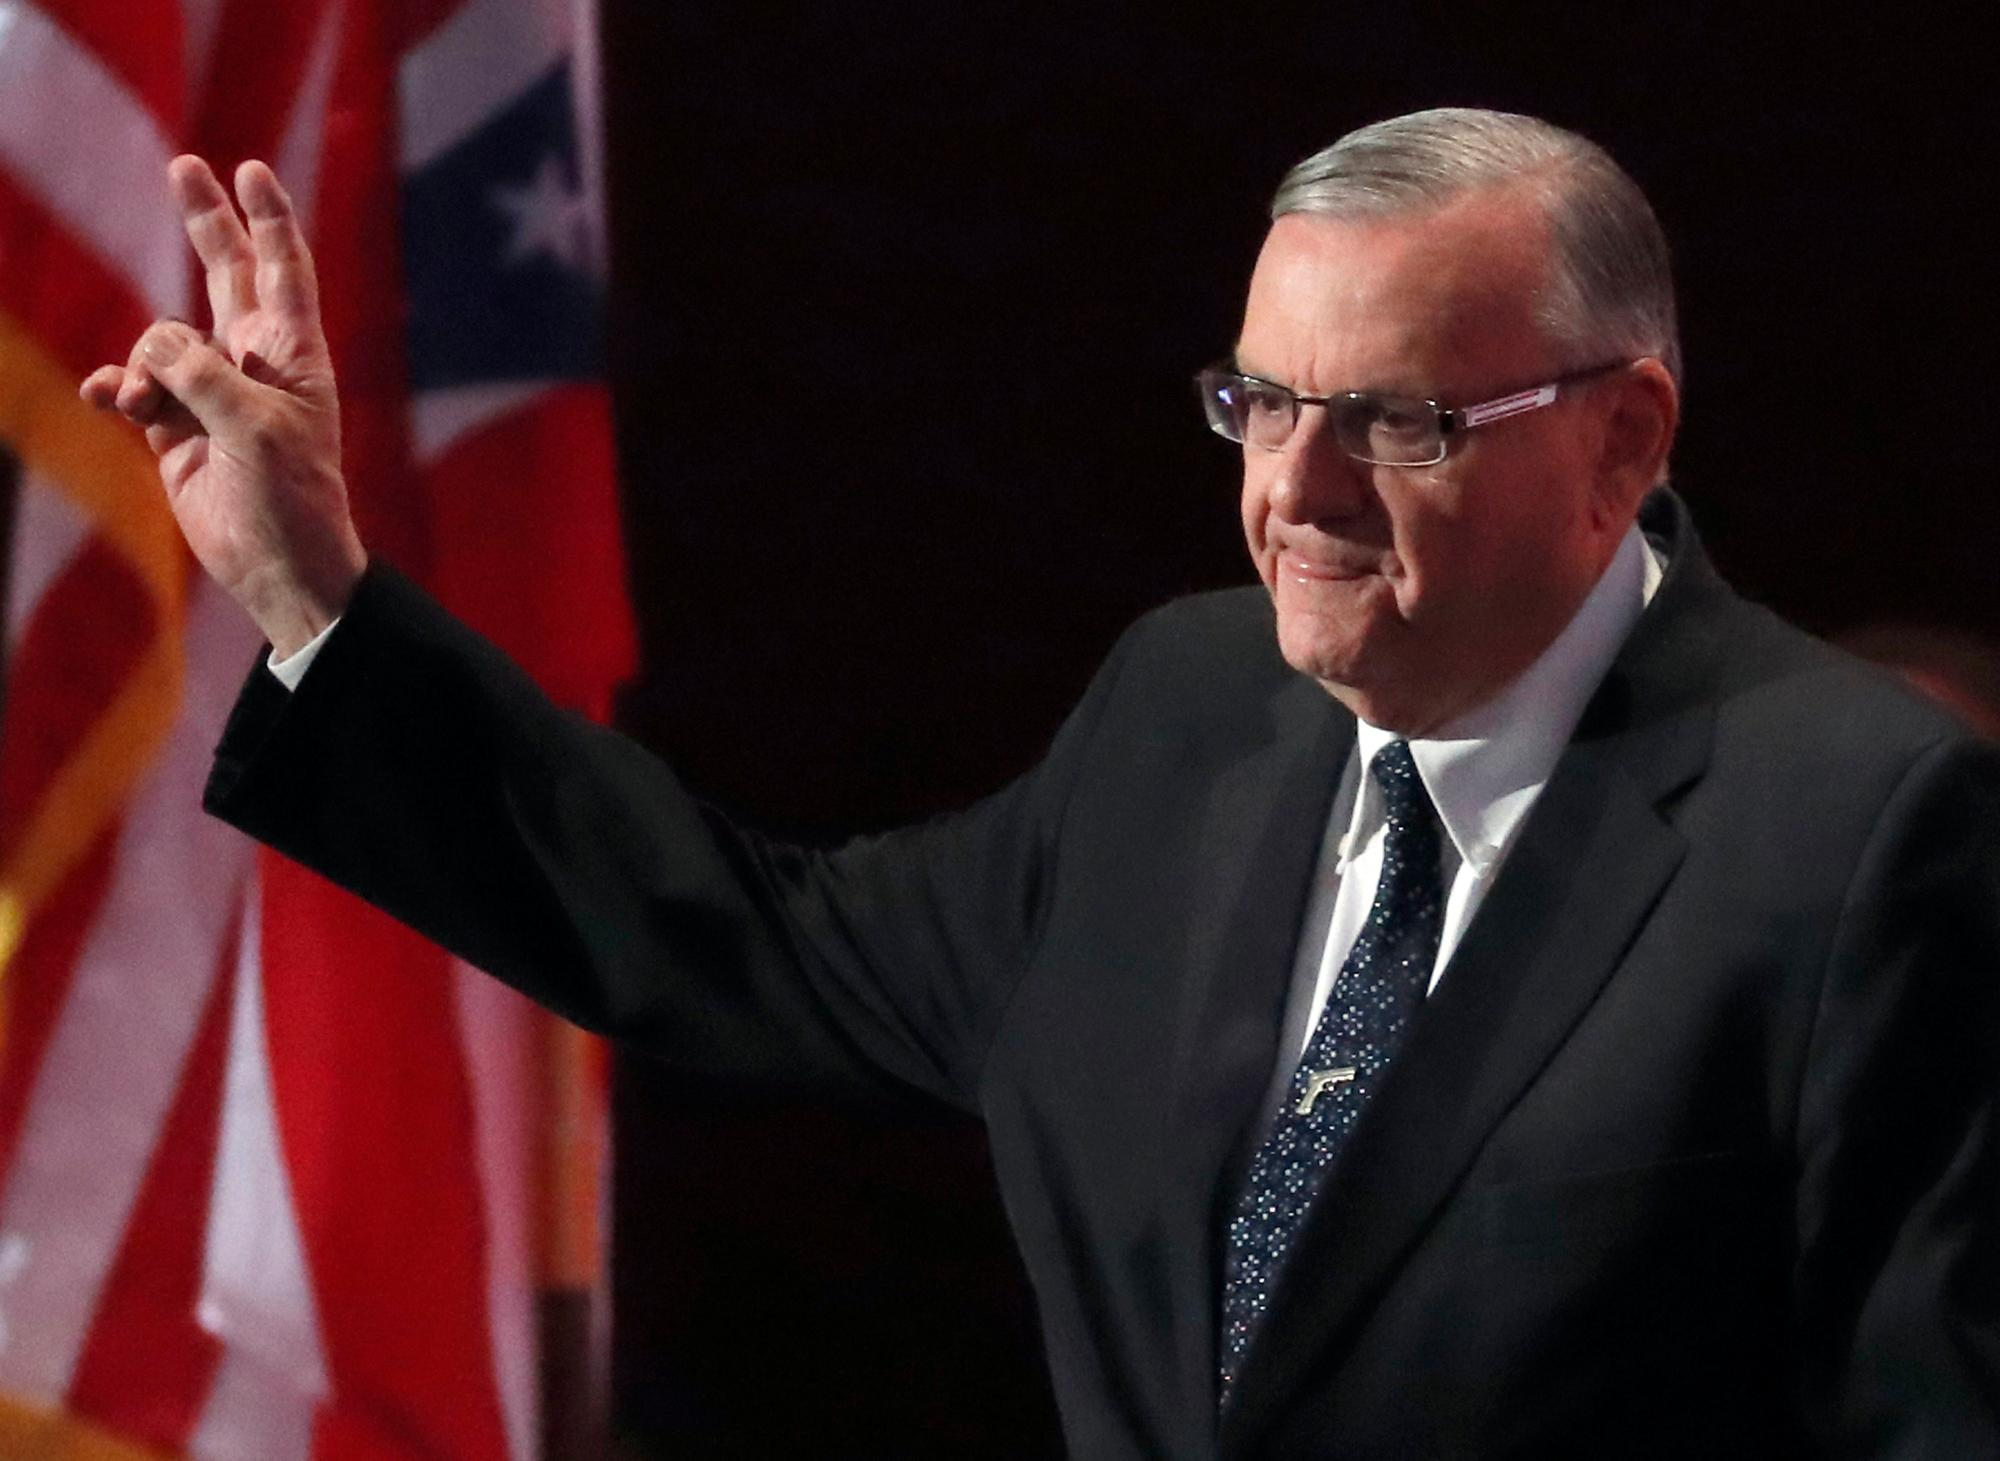 FILE - In this July 21, 2016, file photo, Sheriff Joe Arpaio of Arizona walks on the stage to speak during the final day of the Republican National Convention in Cleveland. Arpaio has been convicted of a criminal charge Monday, July 31, 2017, for disobeying a court order to stop traffic patrols that targeted immigrants in a conviction that marks a final rebuke for the former sheriff and politician who once drew strong popularity from such crackdowns but was booted from office amid voter frustrations over his deepening legal troubles. (AP Photo/Paul Sancya, File)